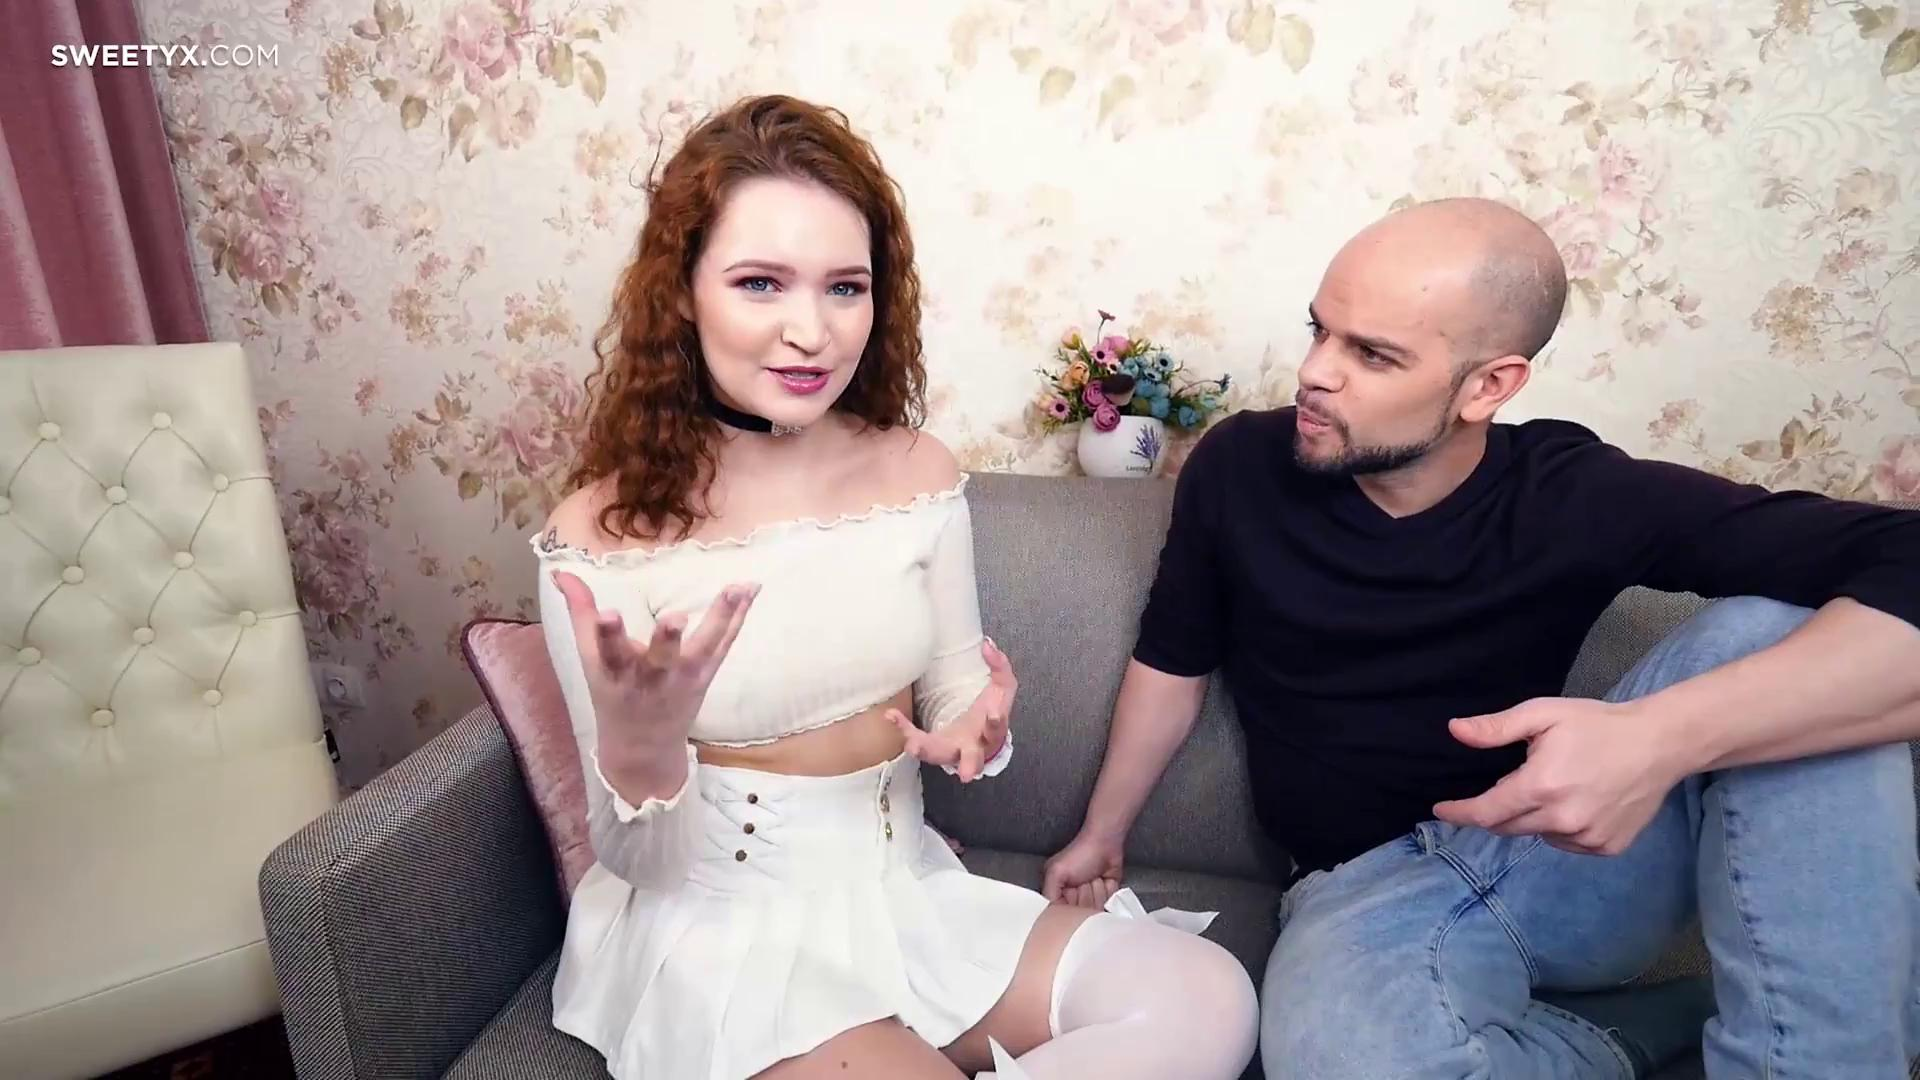 SweetyX Shelly Bliss 18 Years Old Goes For Anal